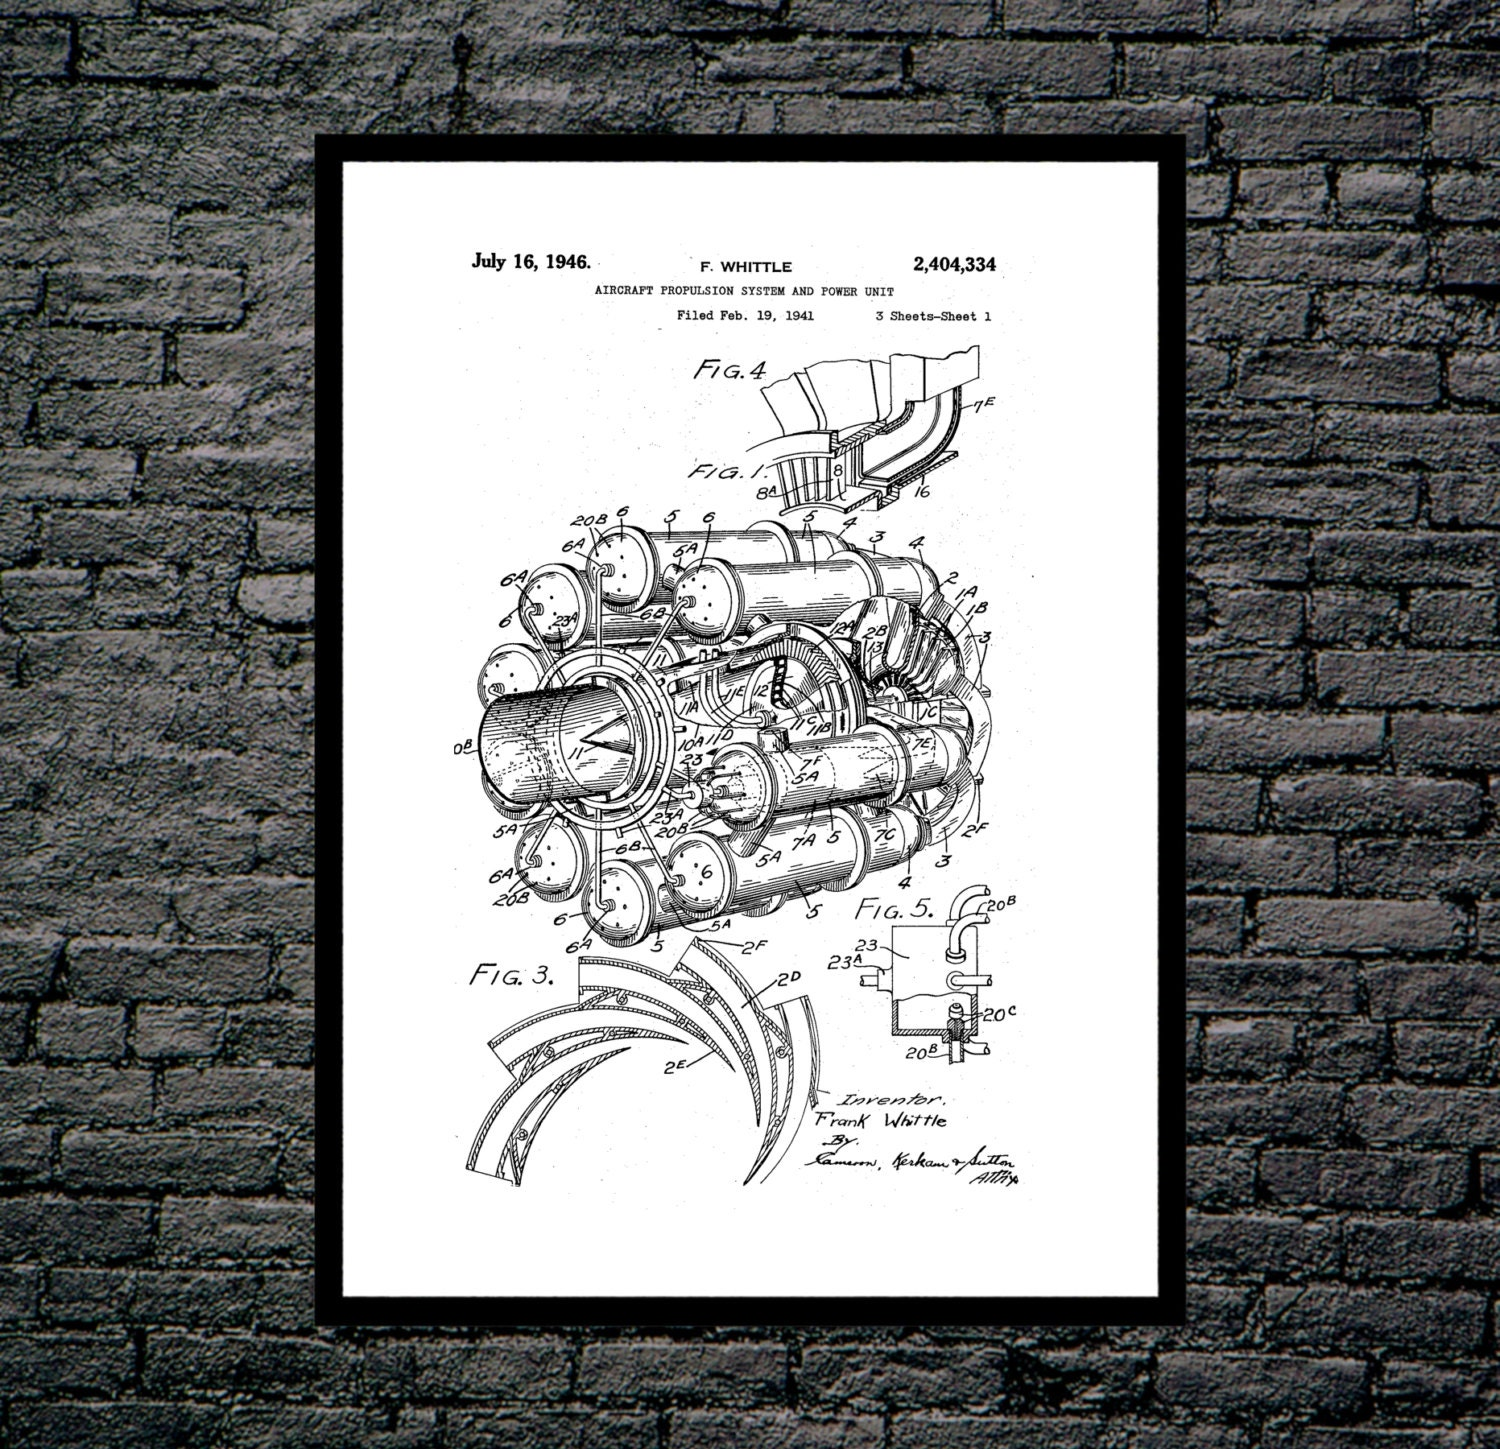 Jet engine patent jet engine poster jet engine blueprint jet jet engine patent jet engine poster jet engine blueprint jet engine art jet engine print jet engine wall art airplane malvernweather Images